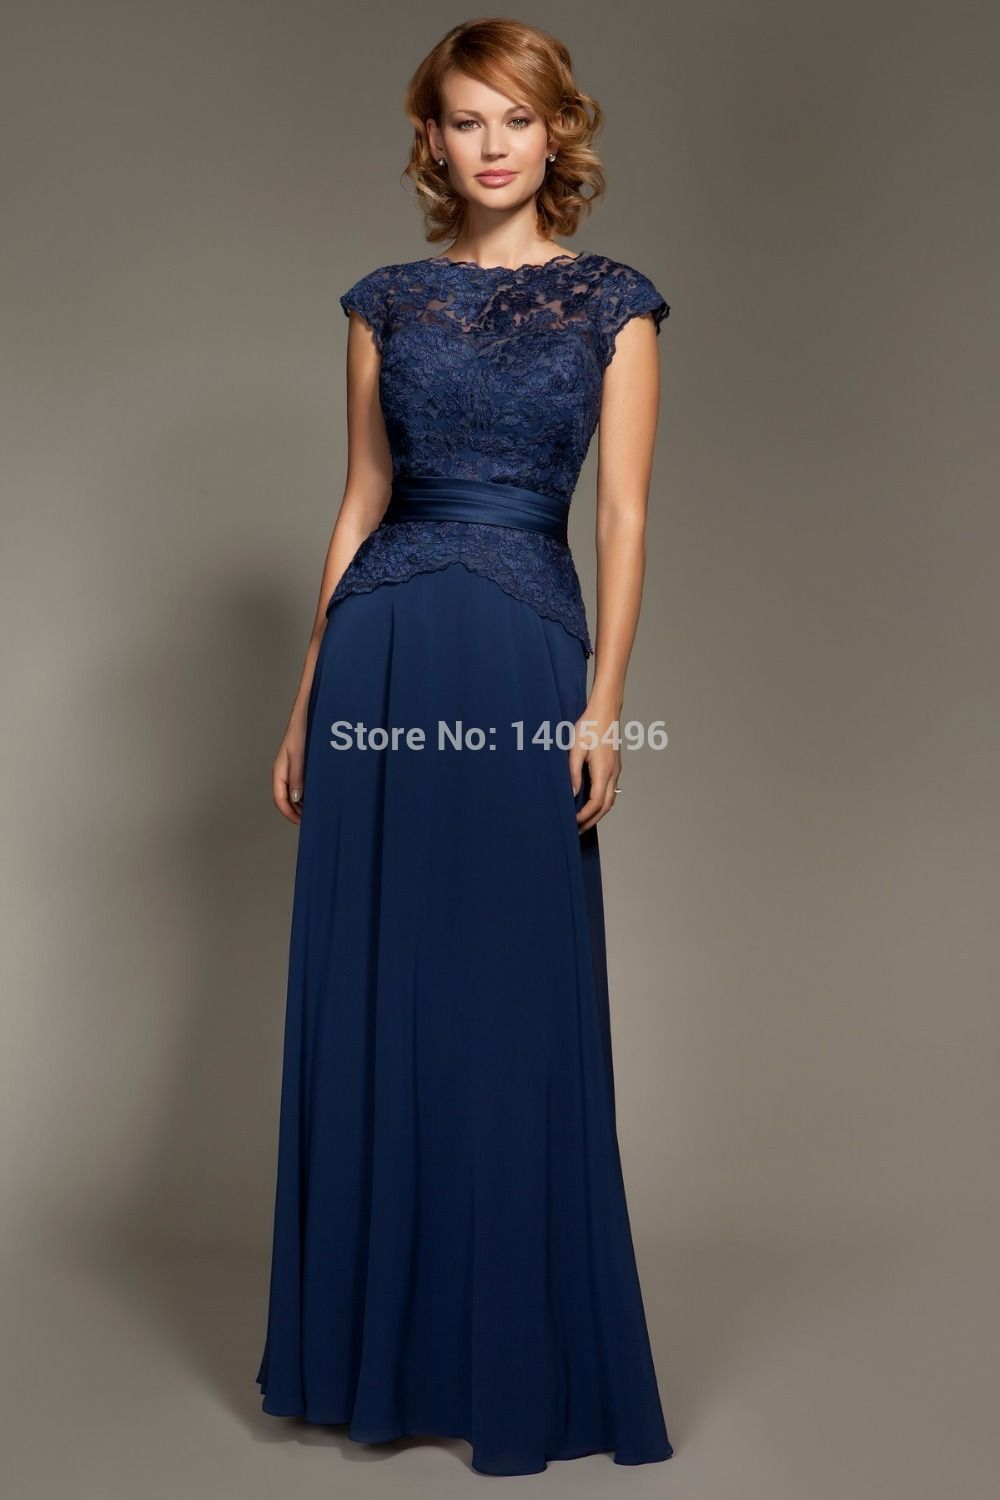 Navy blue full length bridesmaid dress lace peplum google search navy blue full length bridesmaid dress lace peplum google search ombrellifo Gallery